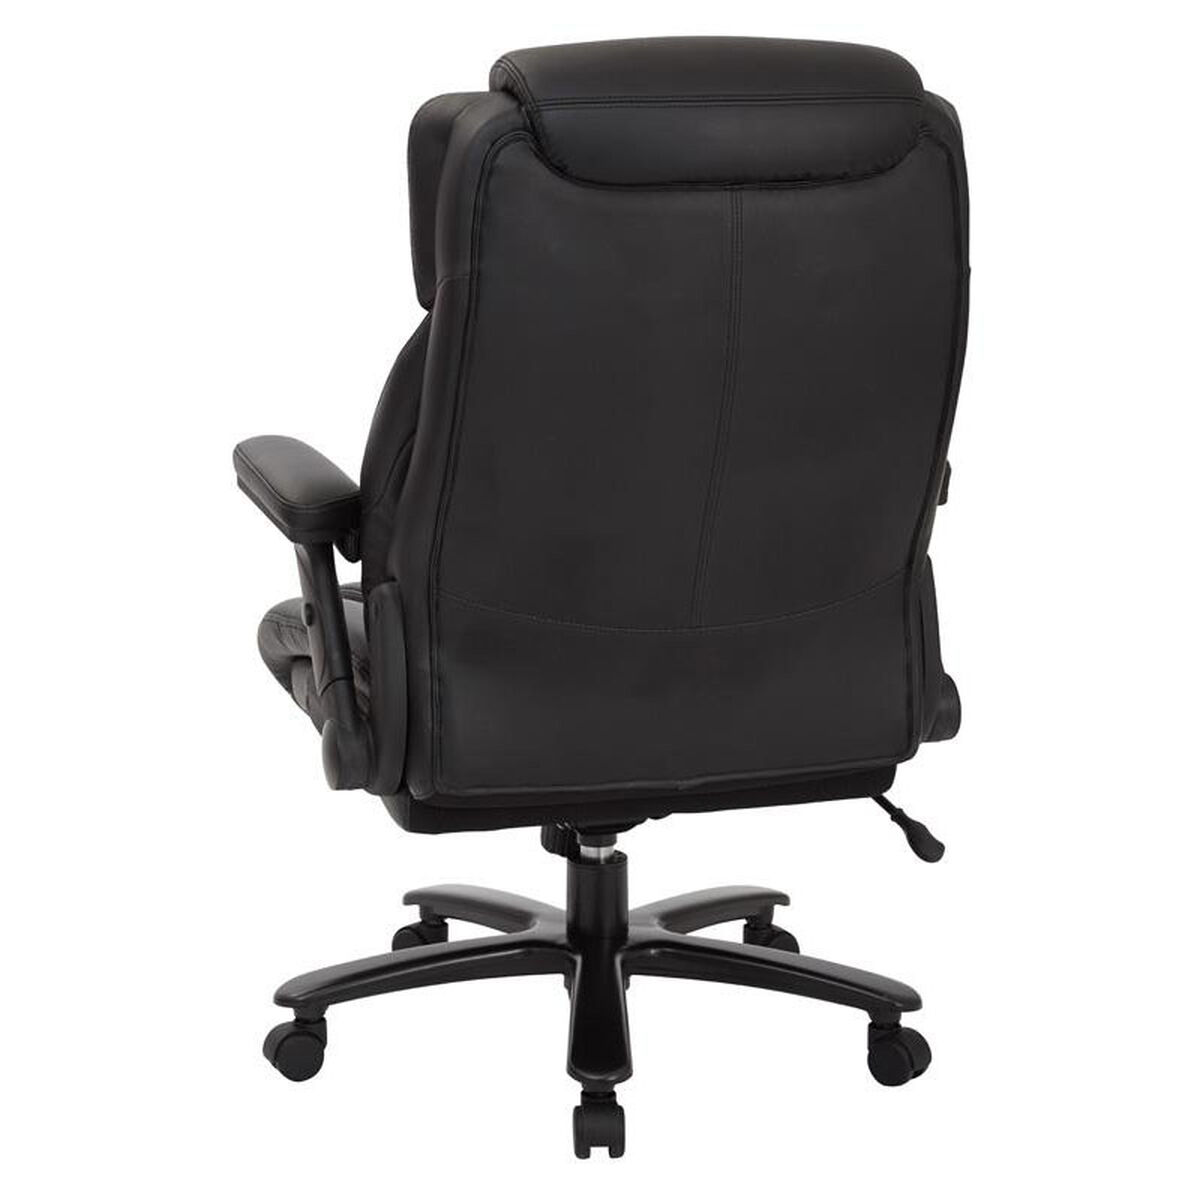 Our Pro Line Ii And Tall Deluxe High Back Bonded Leather Executive Office Chair